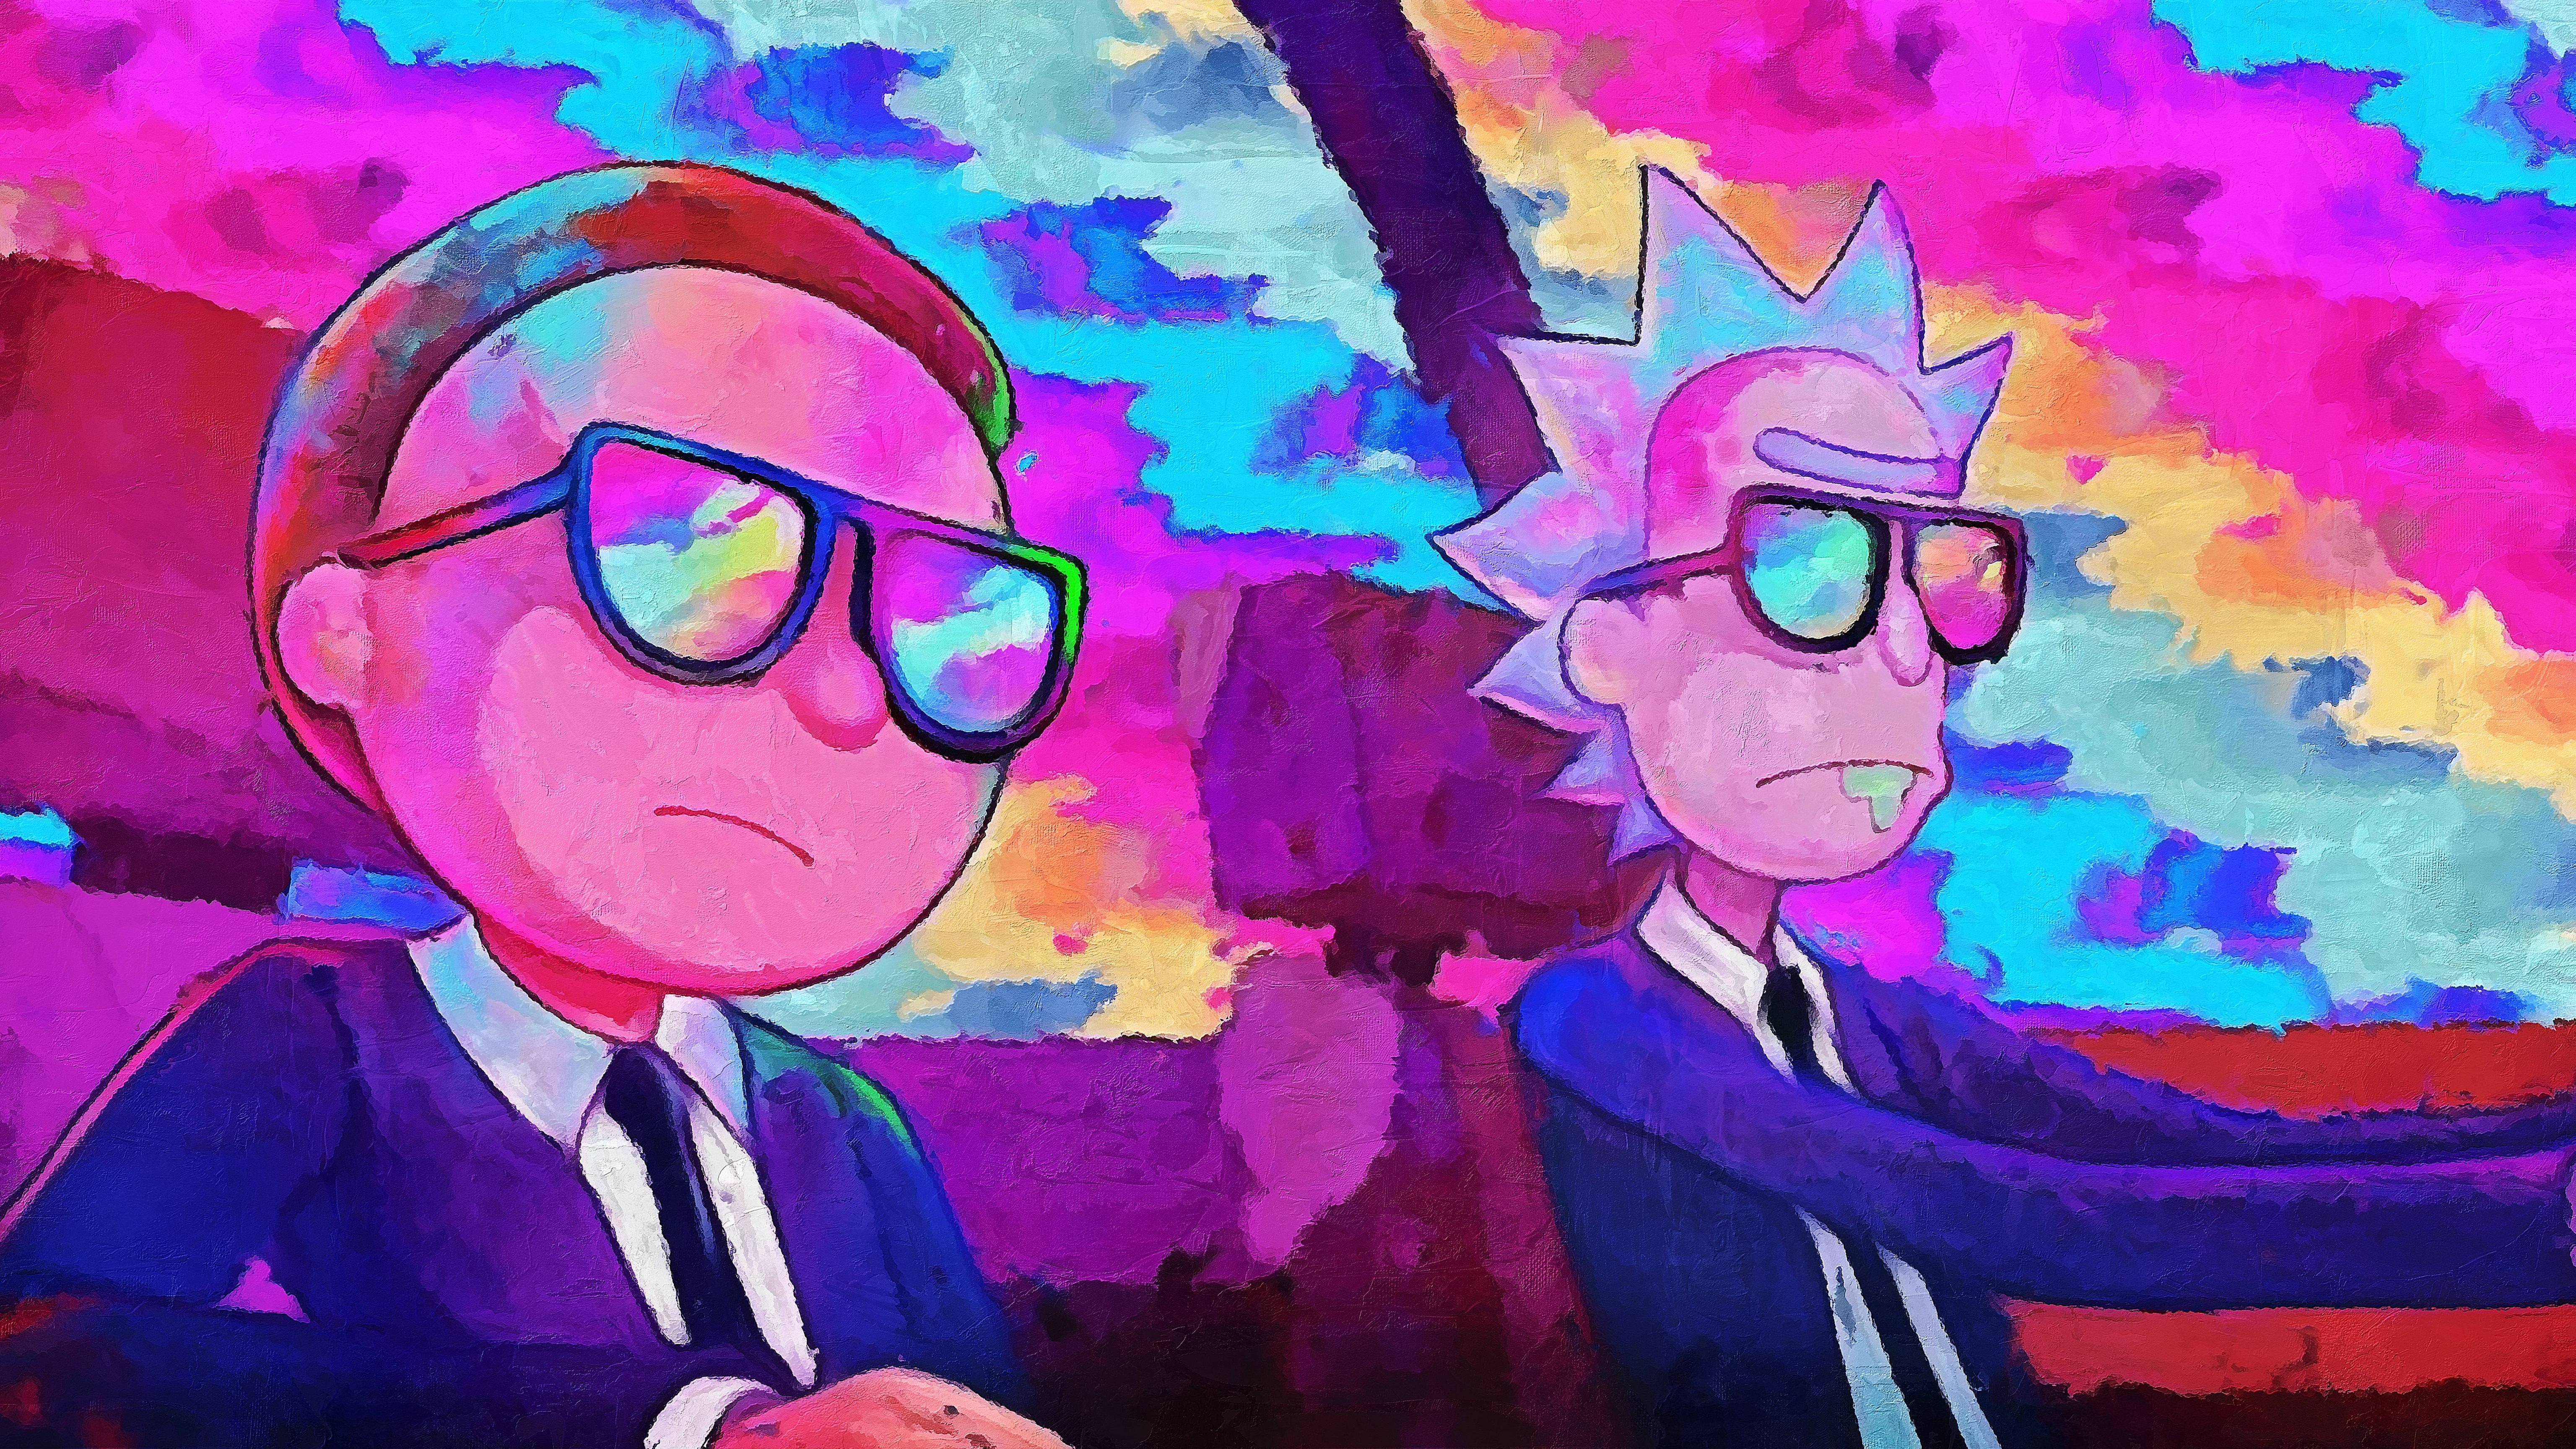 rick and morty 1080p wallpaper, hd rick and morty wallpapers